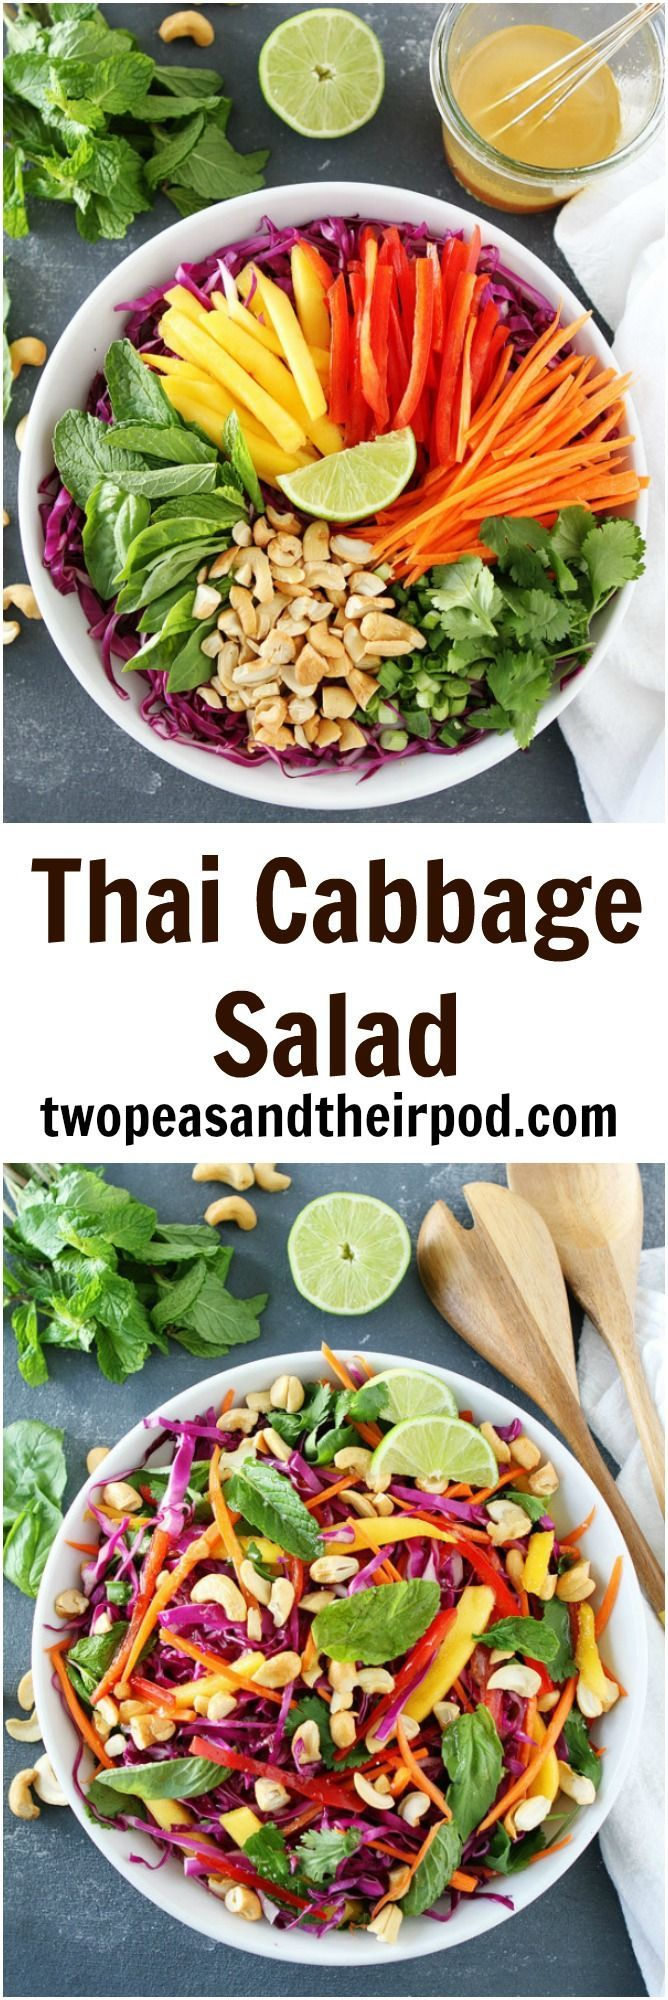 Thai Cabbage Salad Recipe on twopeasandtheirpod.com This healthy Thai-Style Cabbage Salad is light, bright, and packed with crunch and flavor.